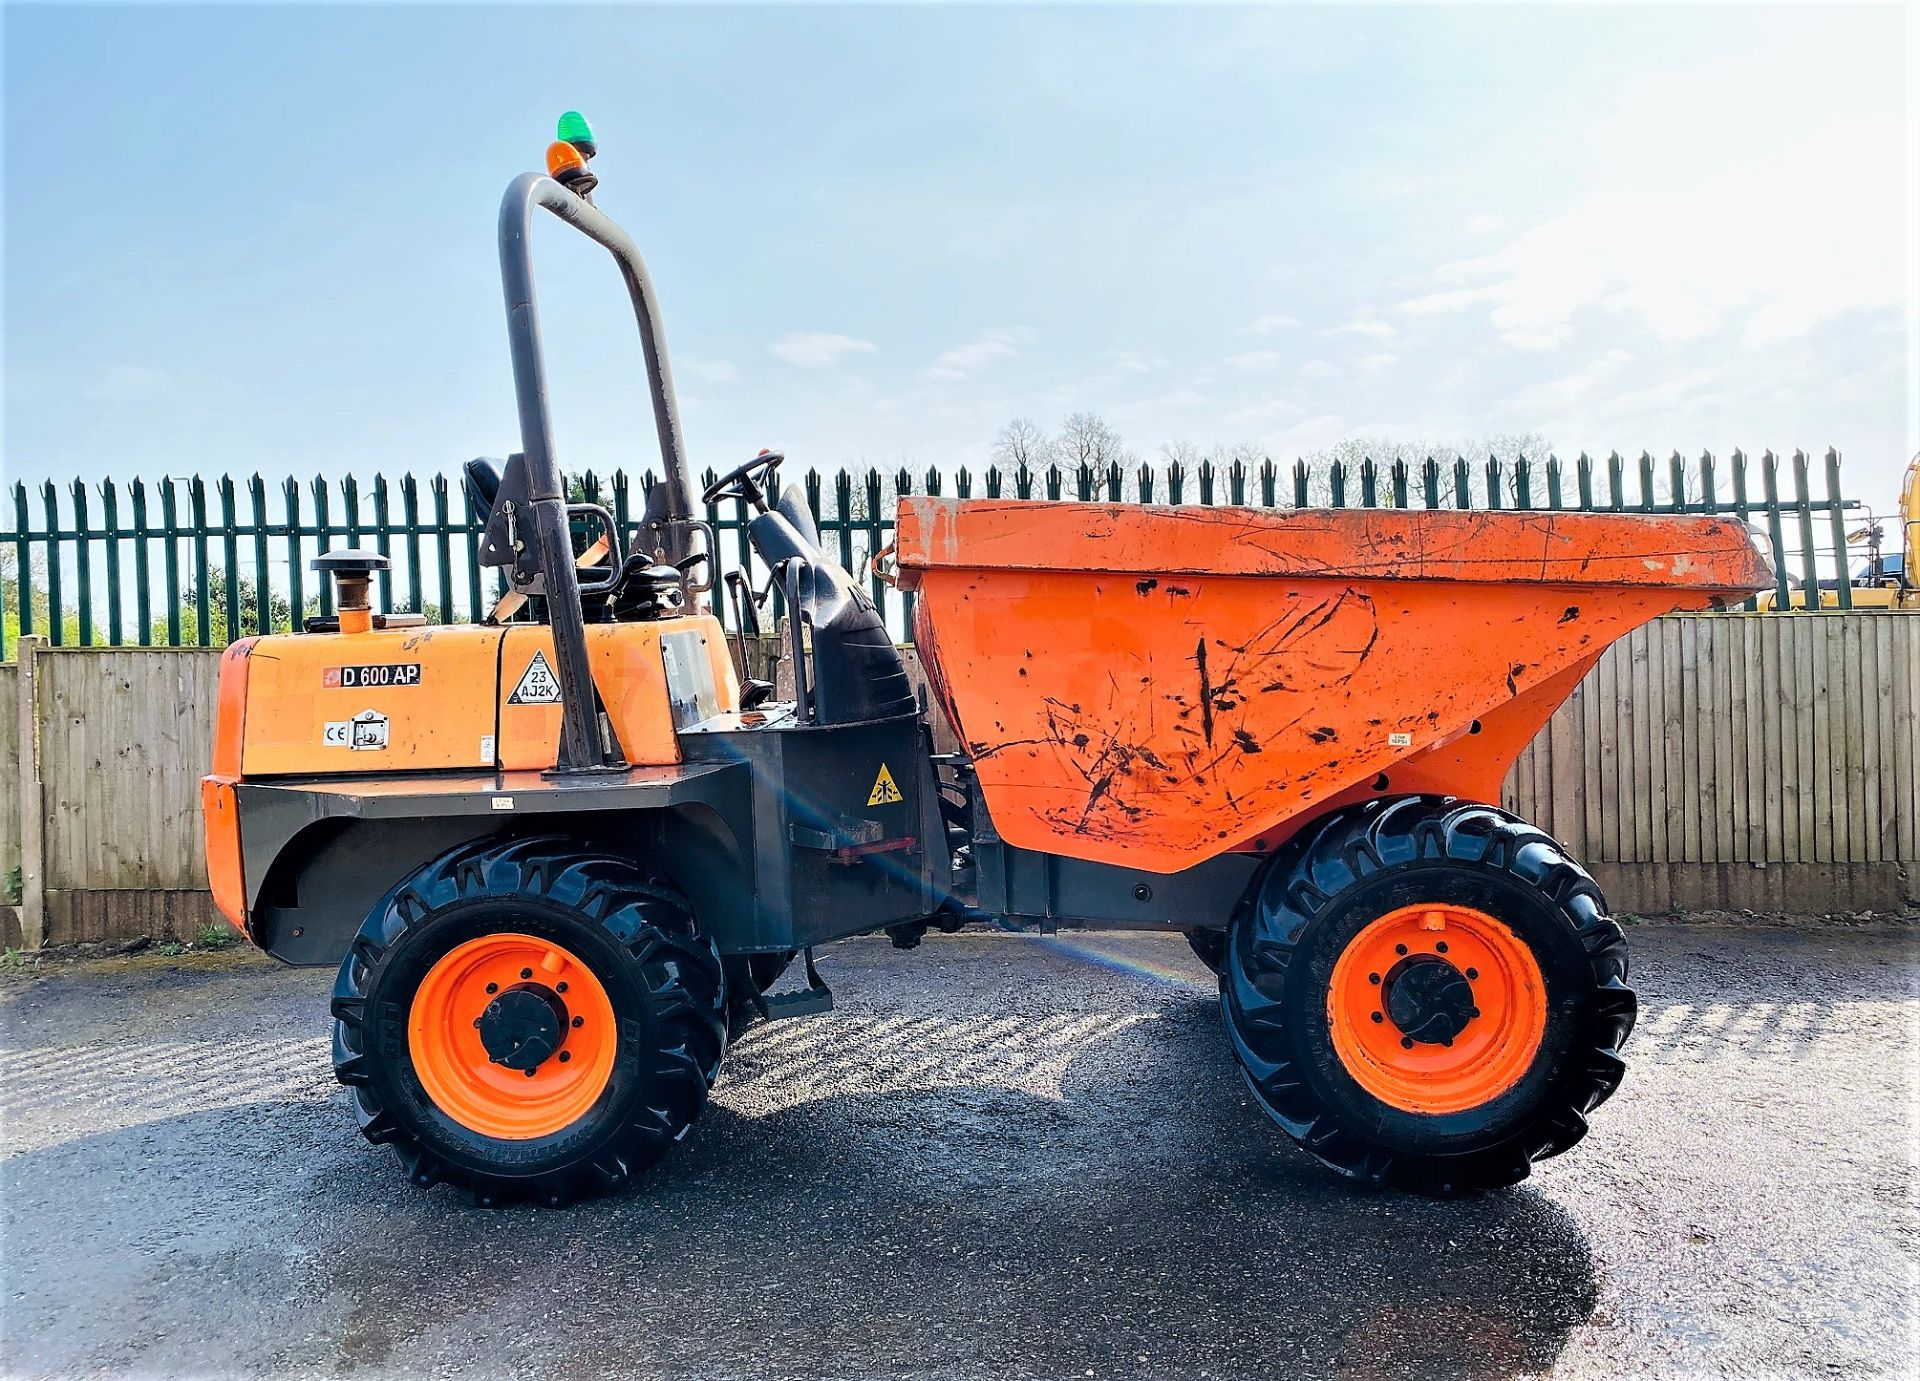 Lot 59 - AUSA D 600 AP 6 TONNE DUMPER, YEAR 2015, 1216 HOURS, GOOD TYRES, CE MARKED *PLUS VAT*